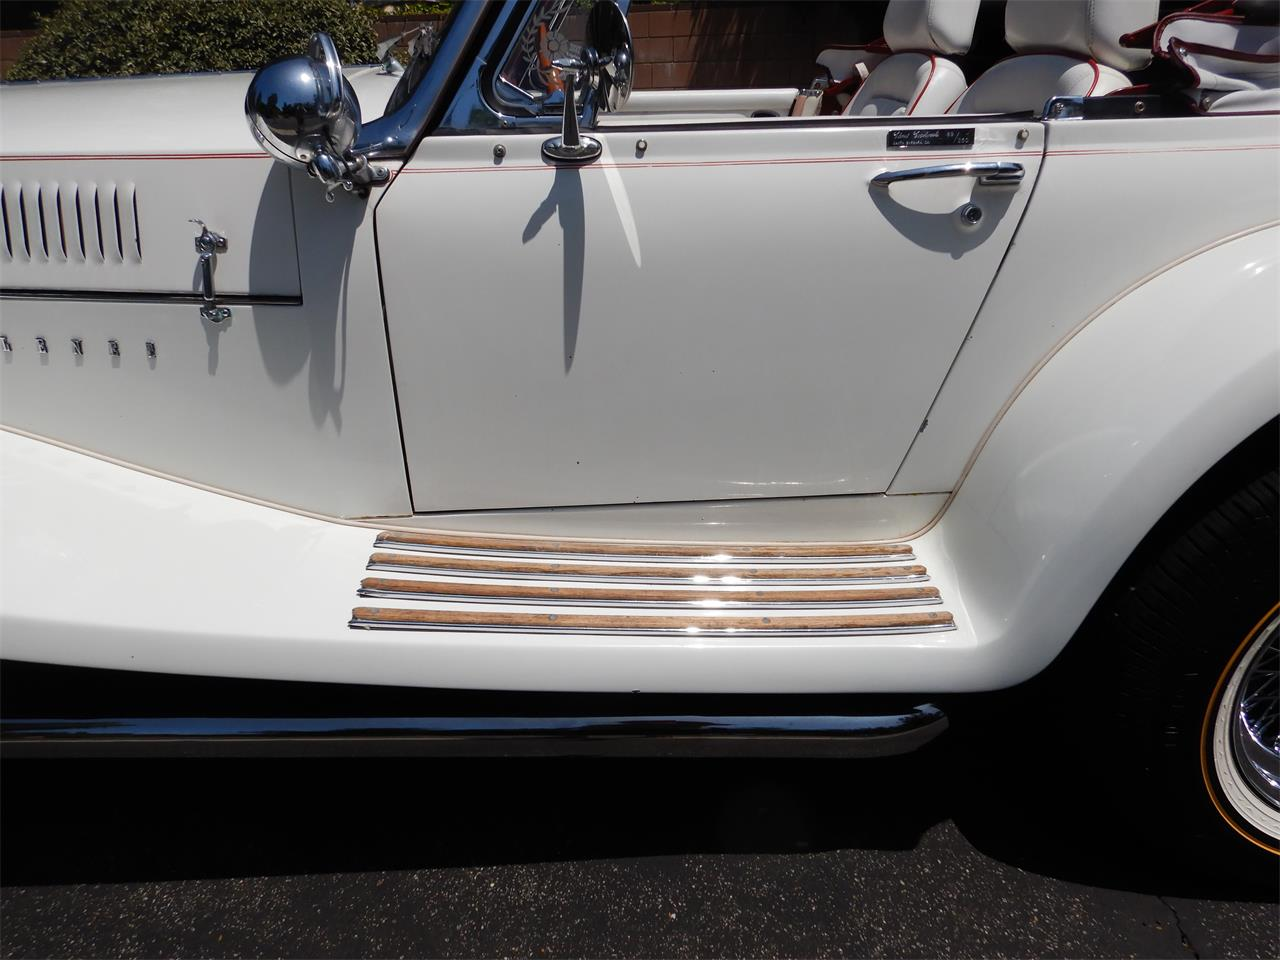 Large Picture of 1978 Series I located in woodland hills California - $32,900.00 - NOHC